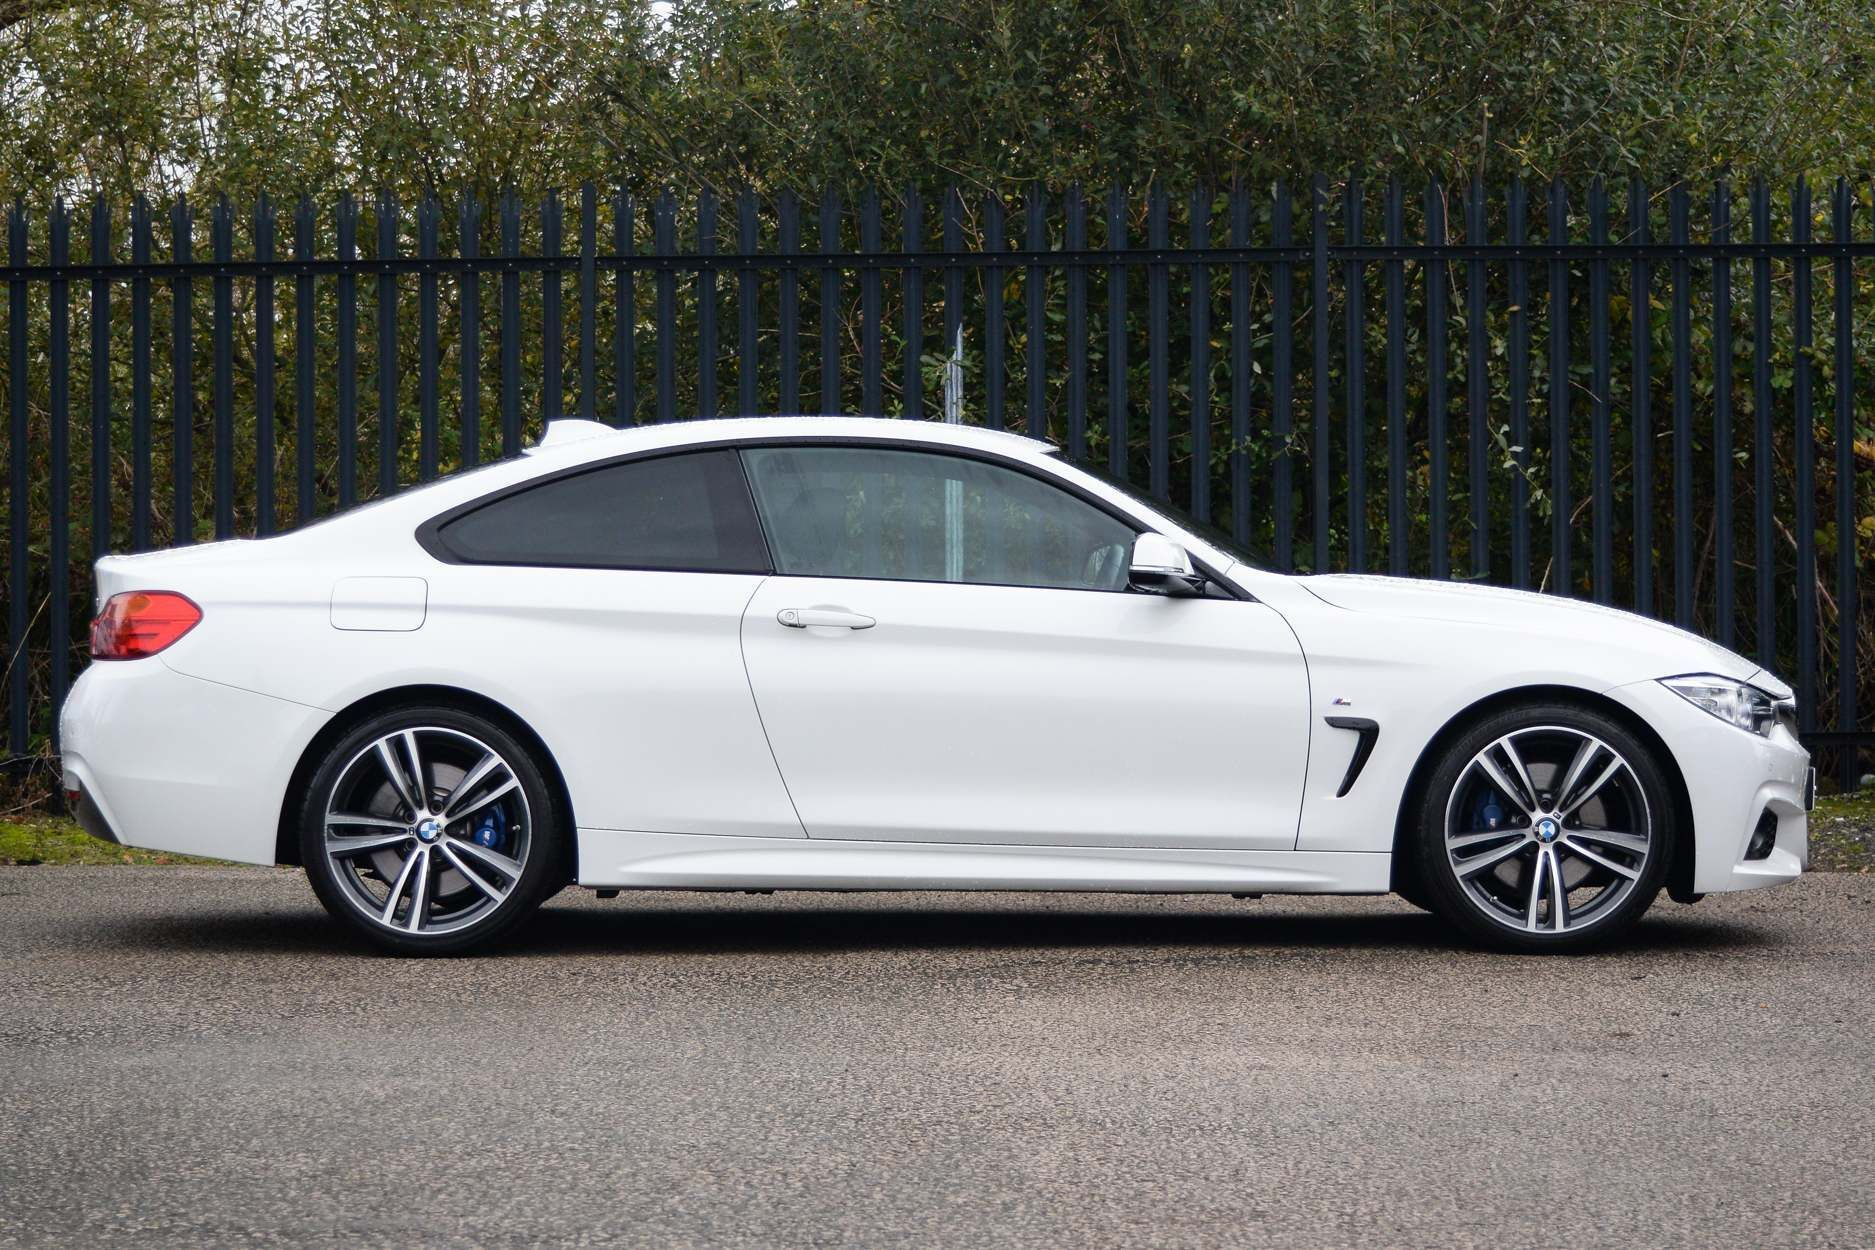 Image 3 - BMW 420d M Sport Coupe (NA66GHY)